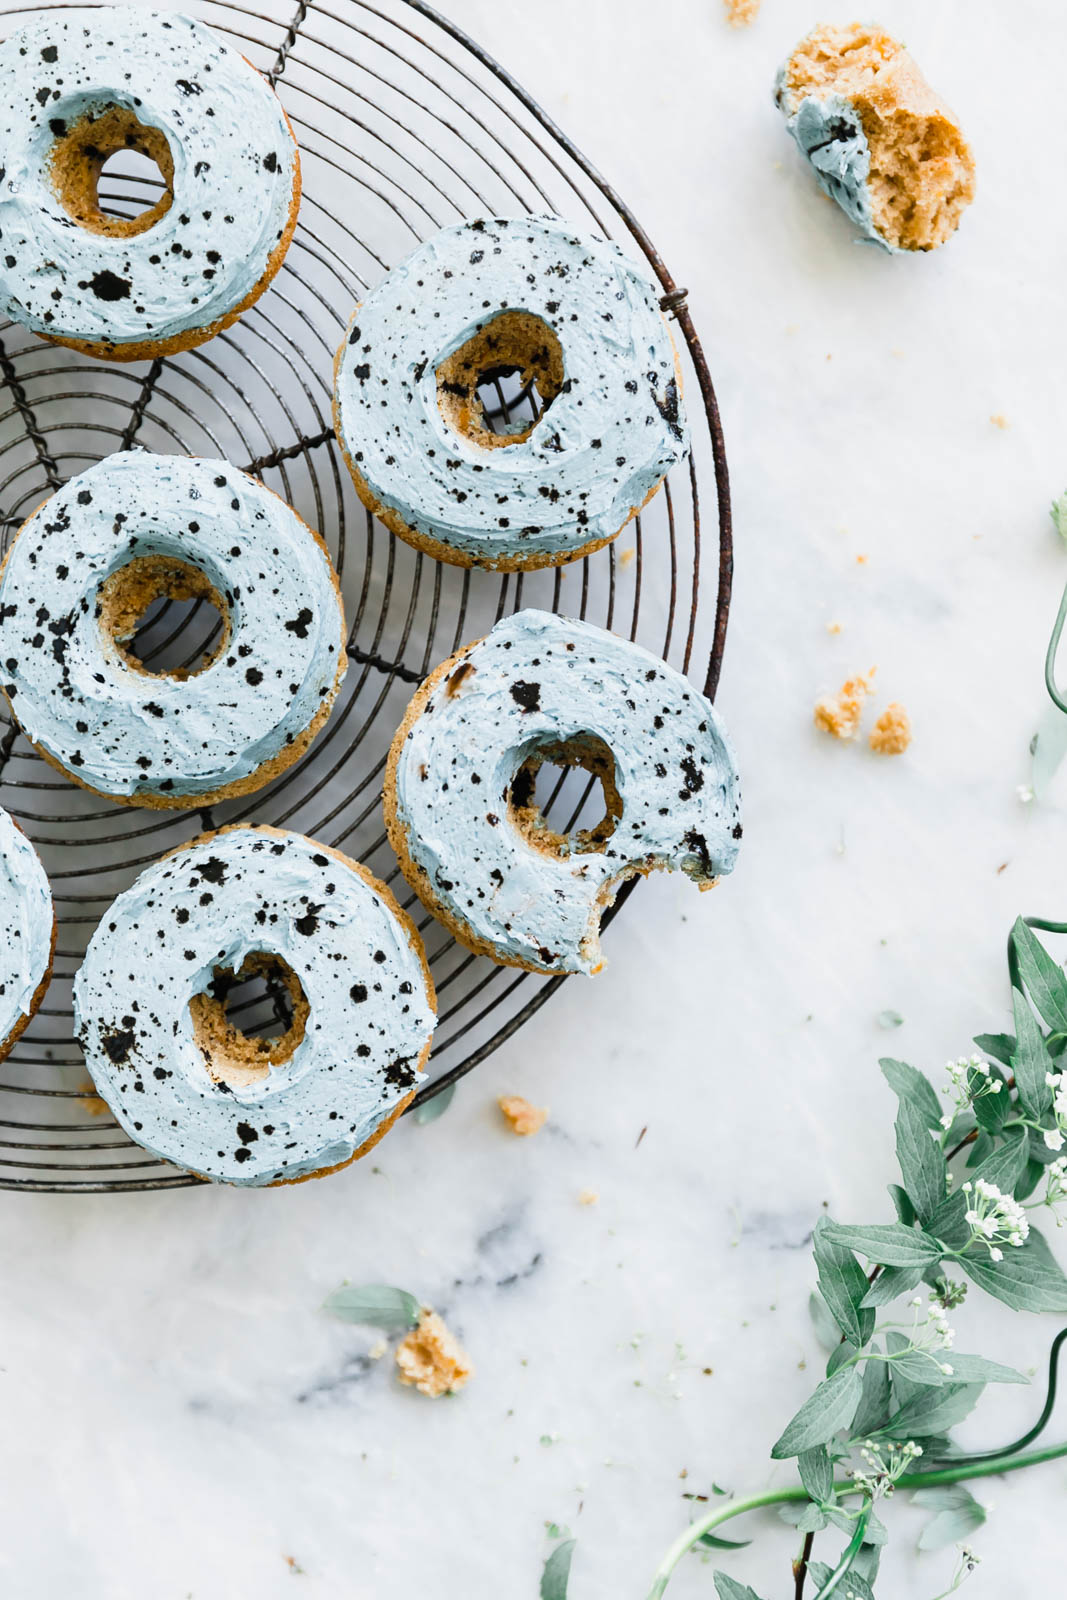 carrot cake donuts on wire rack